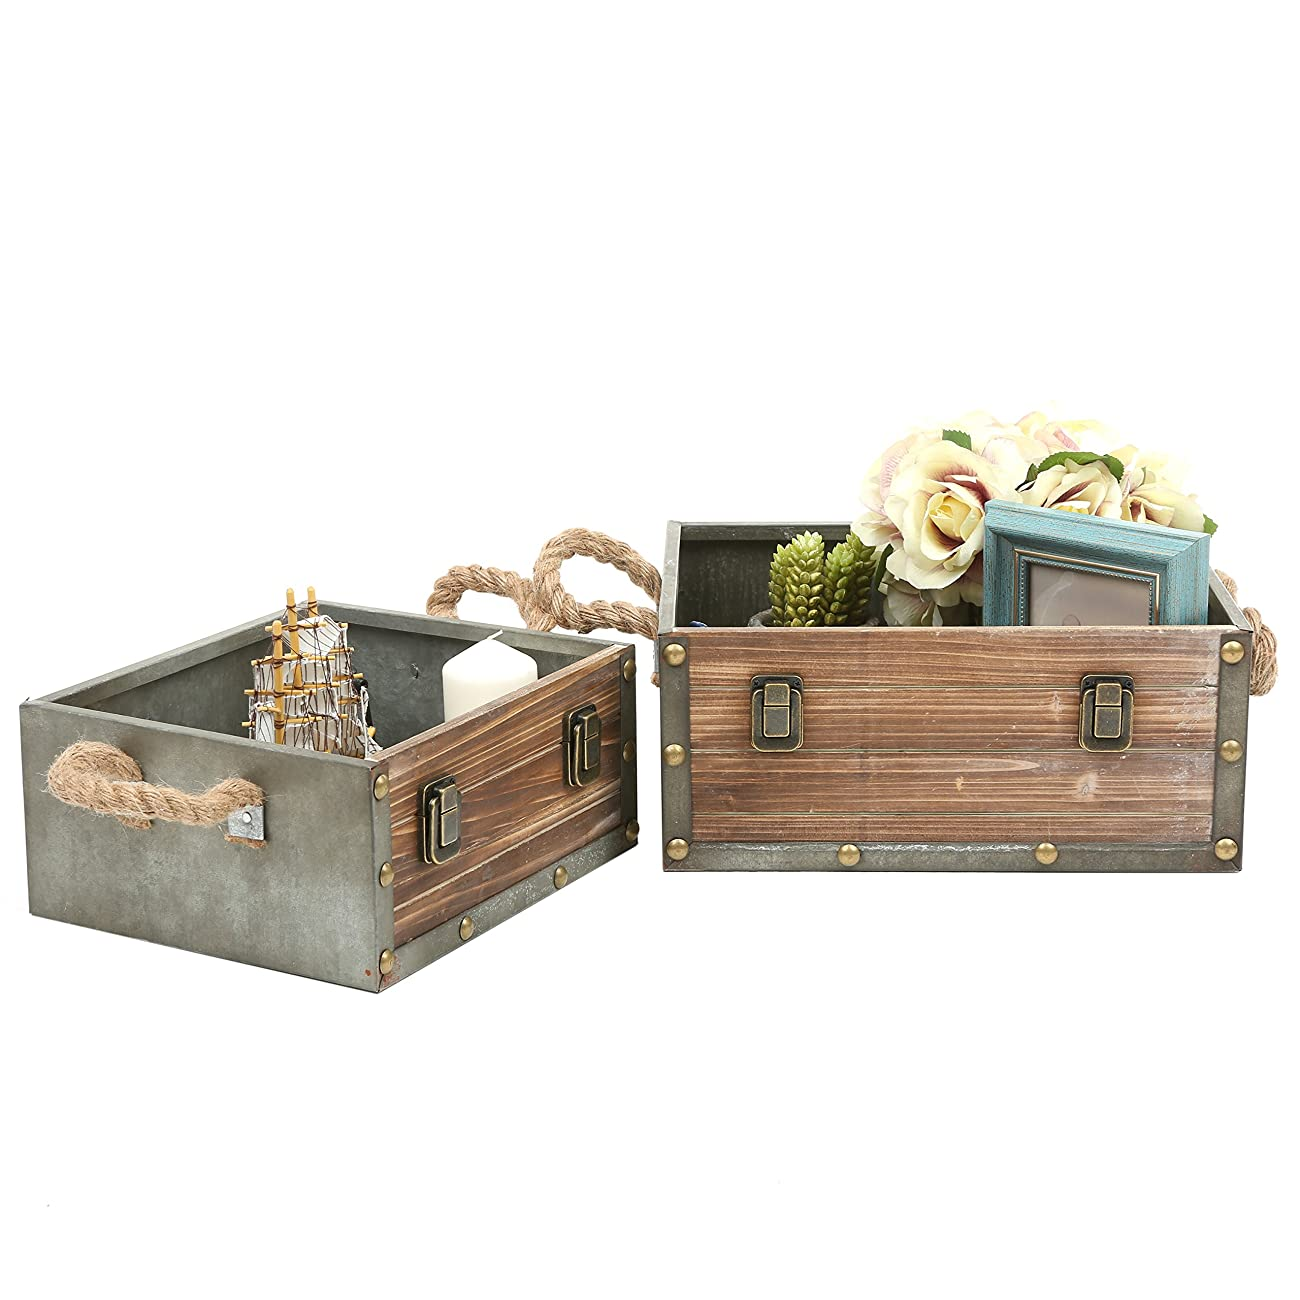 MyGift Set of 2 Wood Crates w/ Rope Handles, Rustic Nesting Storage Boxes, Brown 1